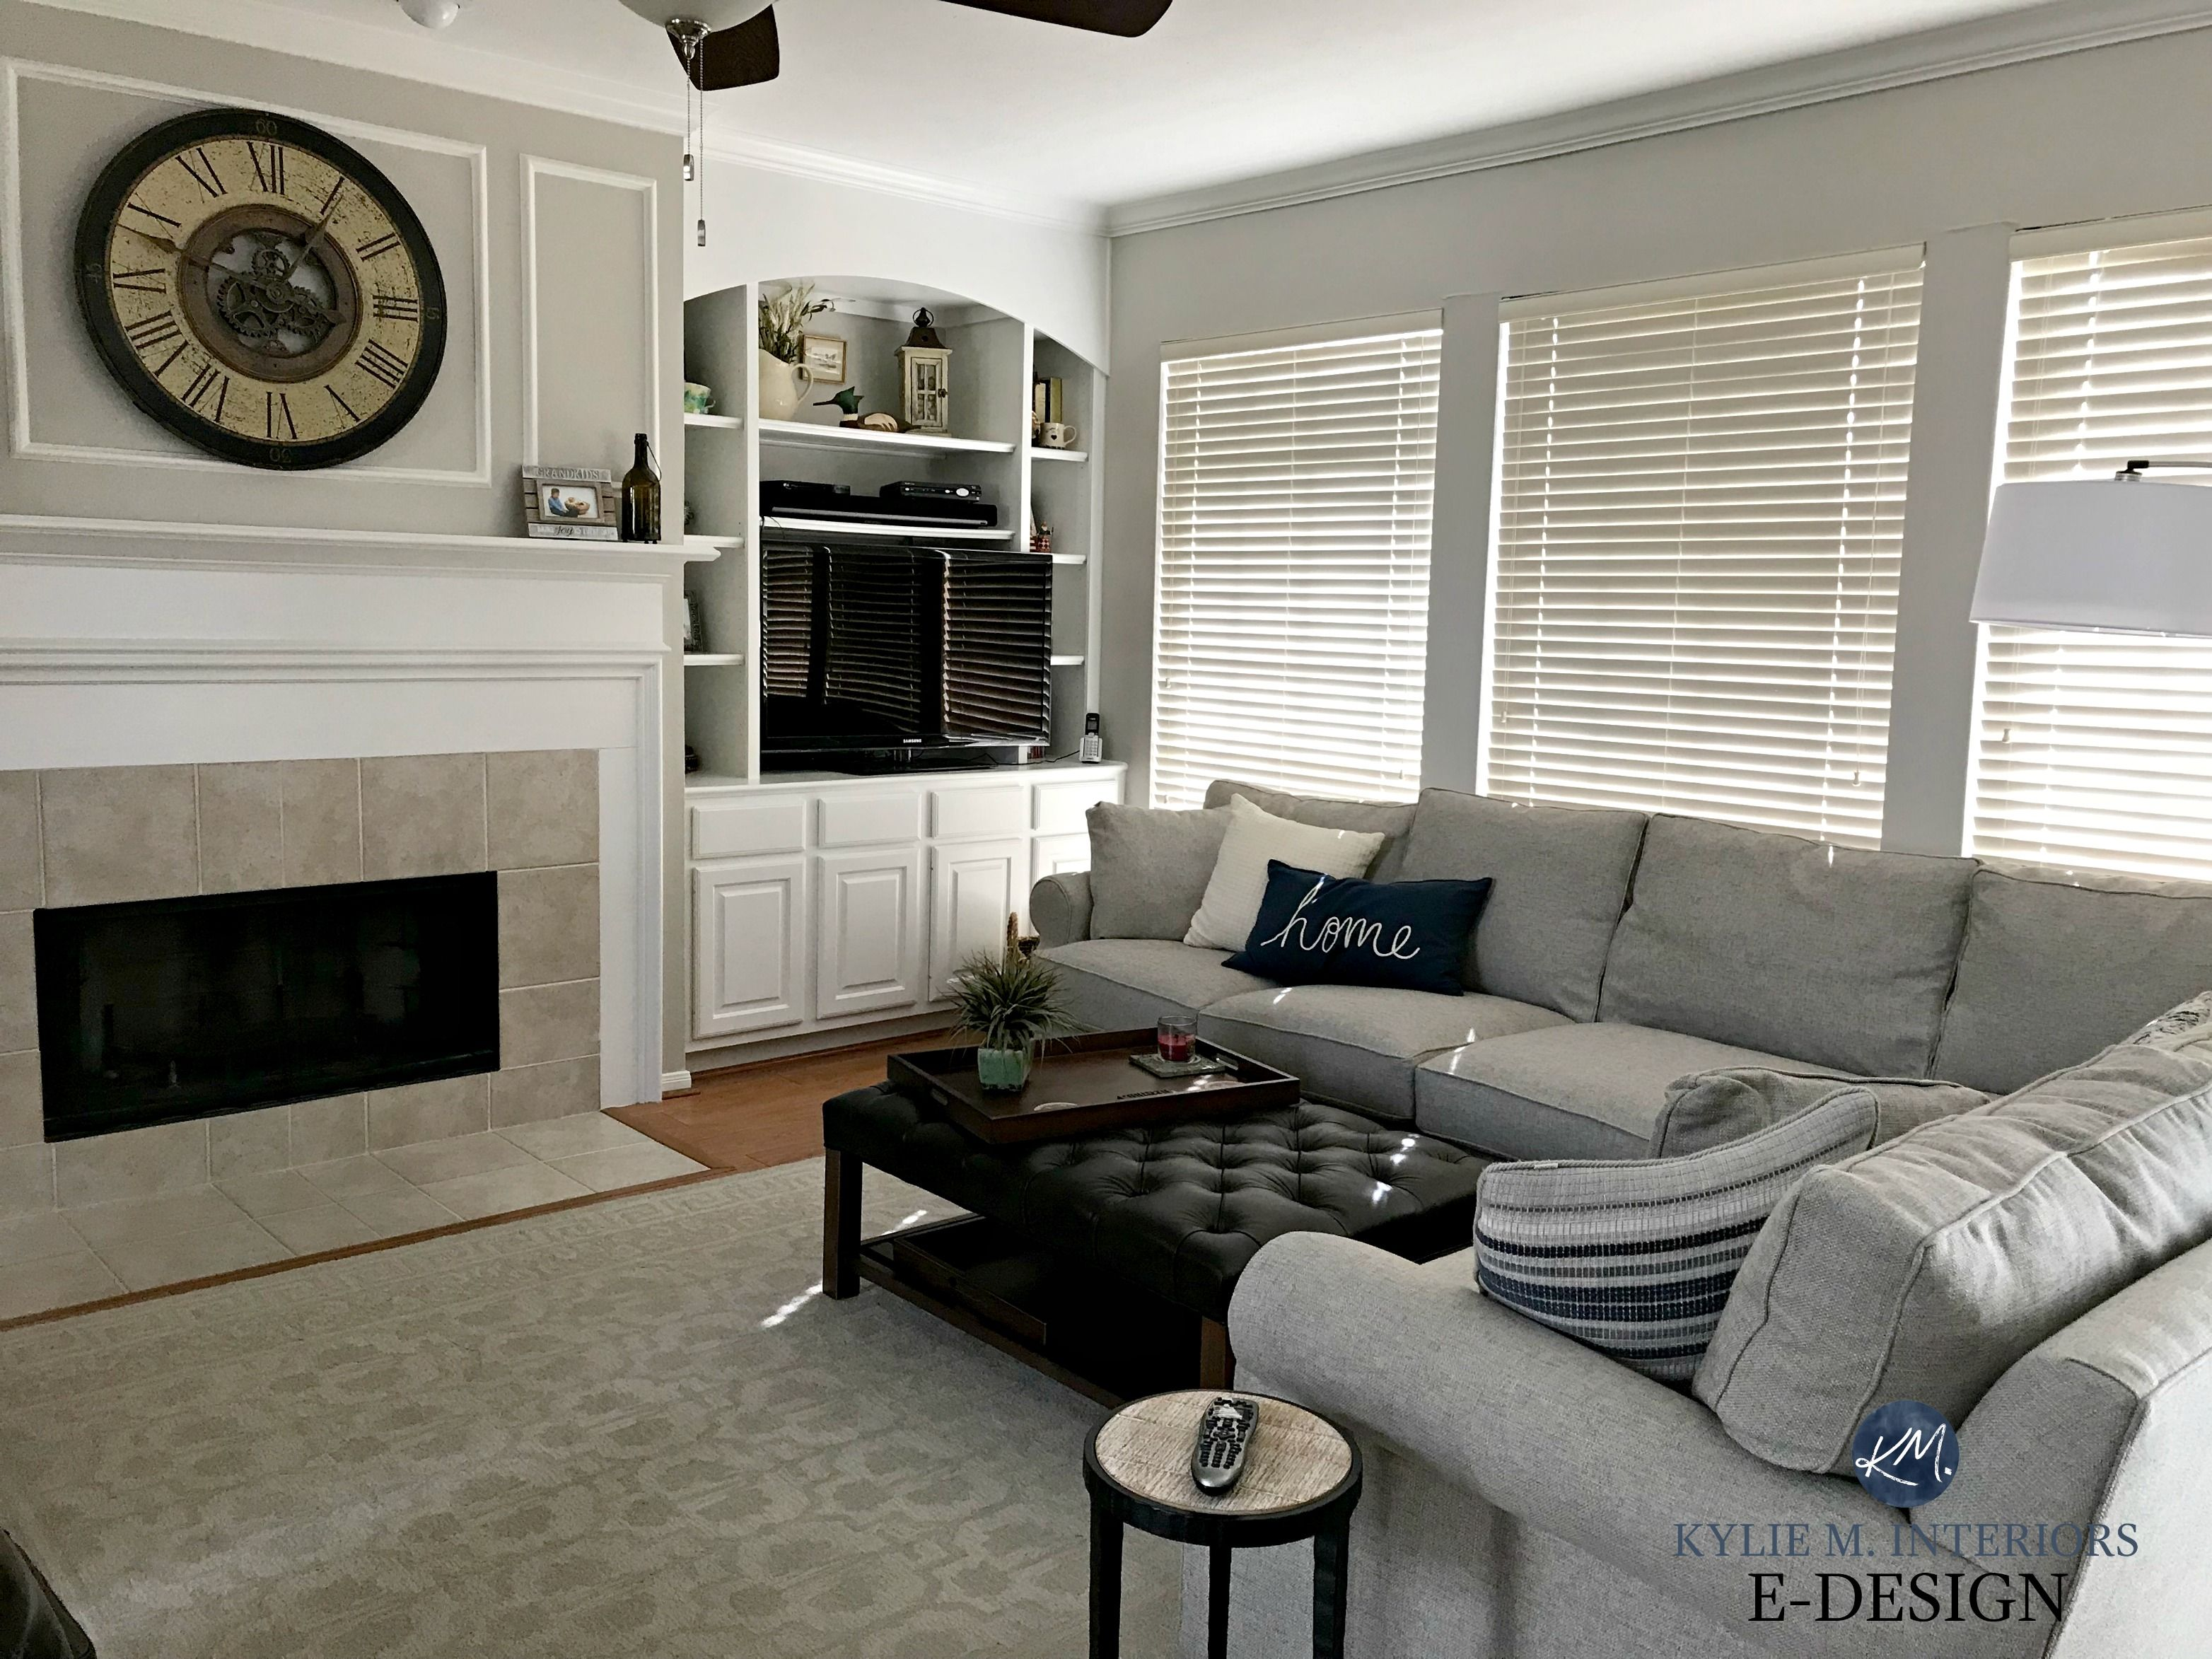 Edesign Paint Color Expert Kylie M Interiors Sherwin Williams Agreeable Gray With Gray Sectional Couch Grey Sectional Grey Sectional Couch Agreeable Gray